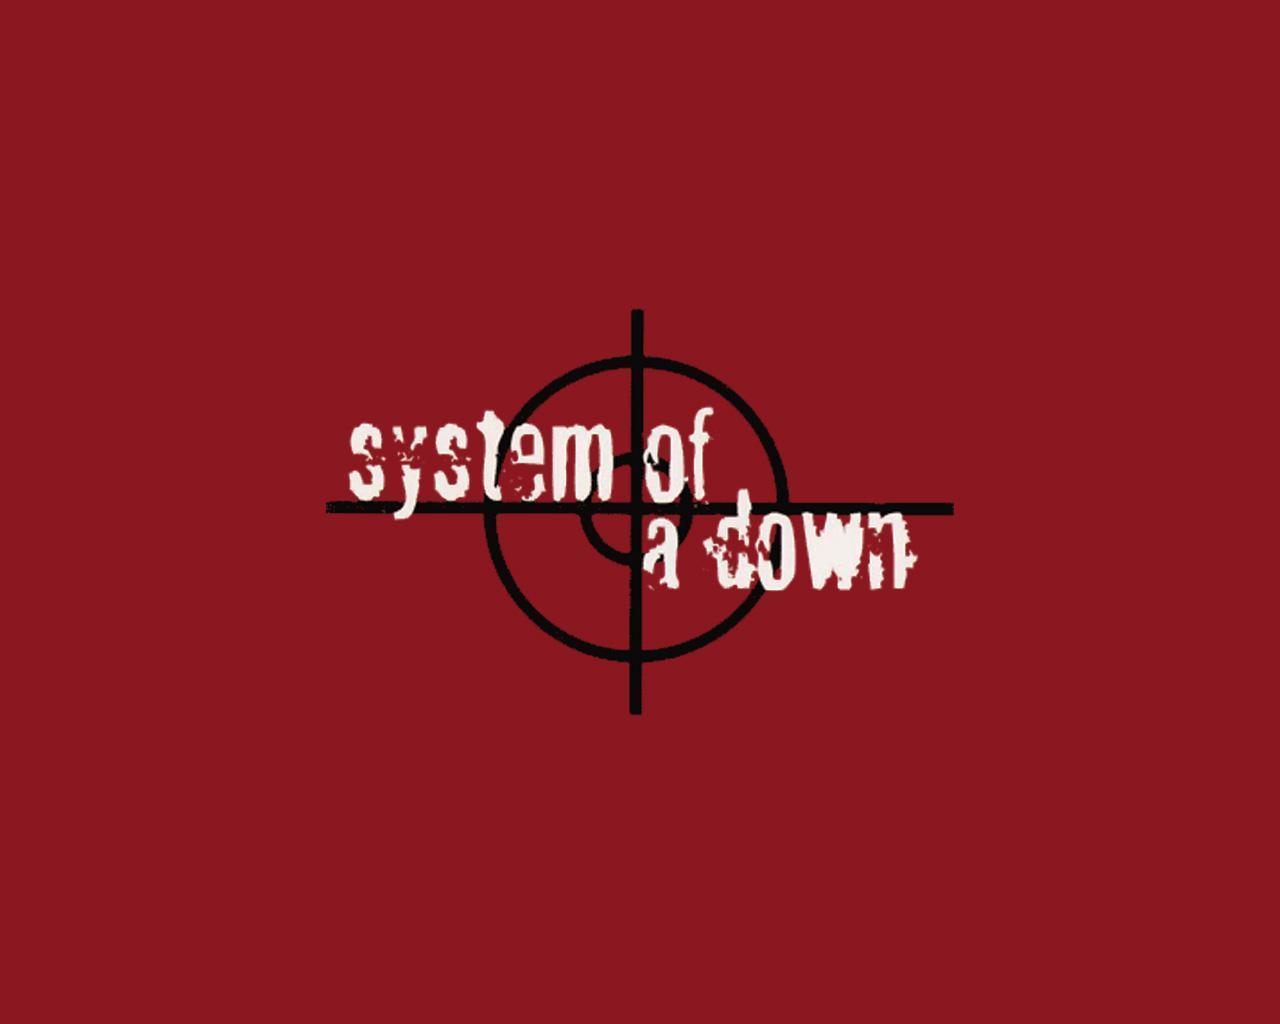 System of a Down   System of a Down Wallpaper 2270584 1280x1024